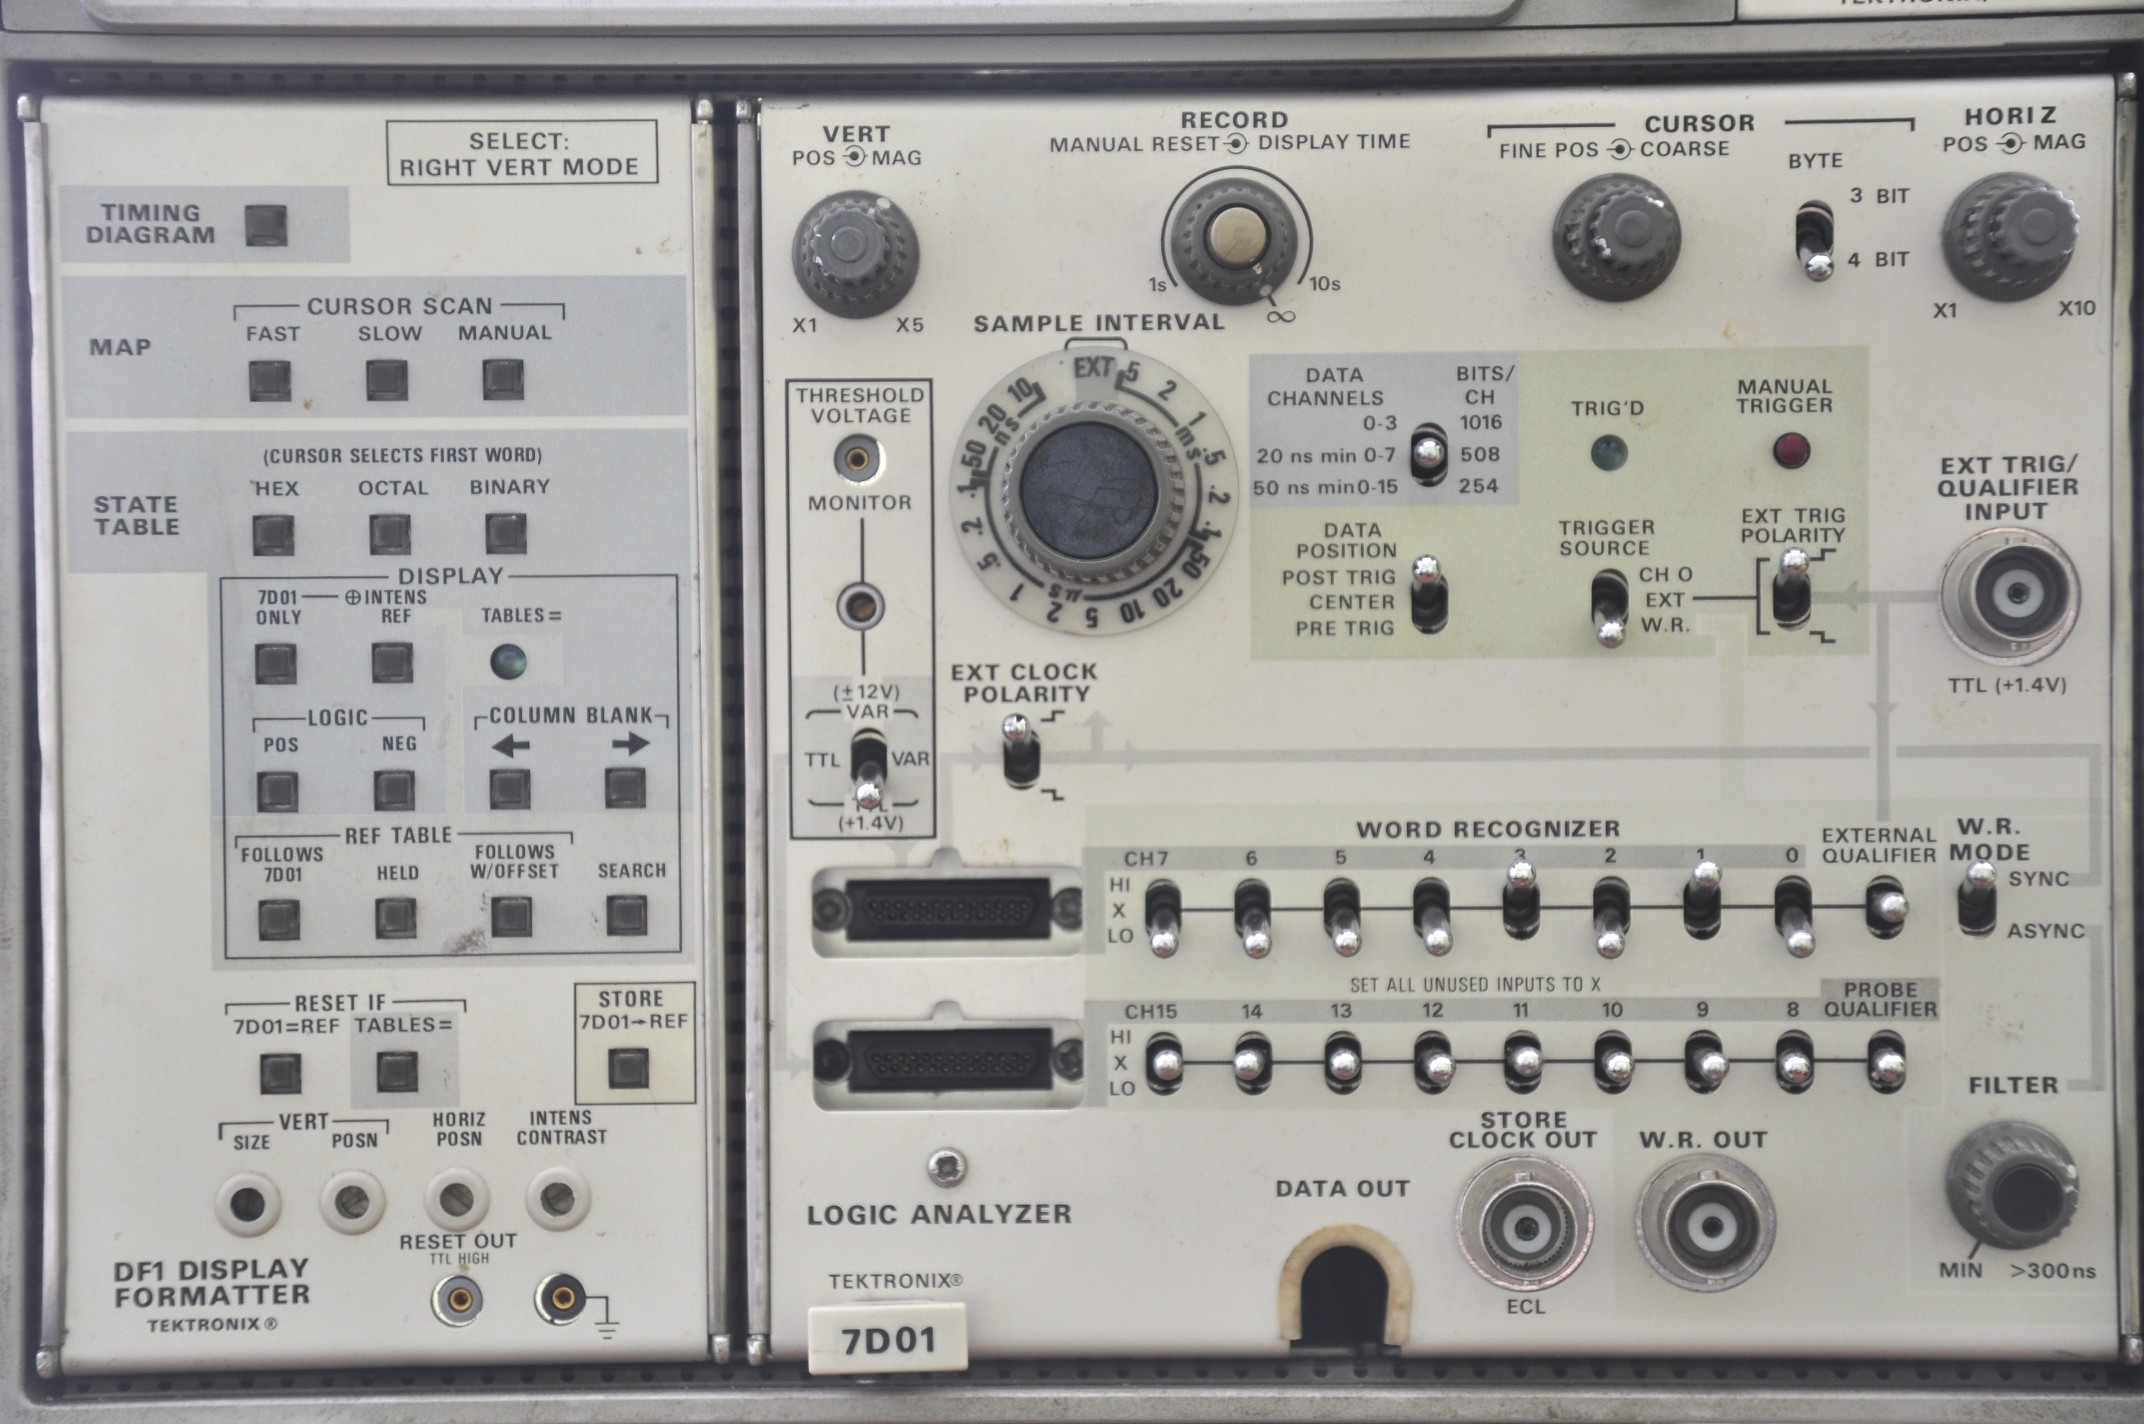 Tekronix 7d01 Logic Analyzer Buttons Switches Knobs Lights Diagram Behold The Tektronix First Released In 1977 Shown Here With Its Companion Display Formatter As A Side Note I Really Need Better Lens